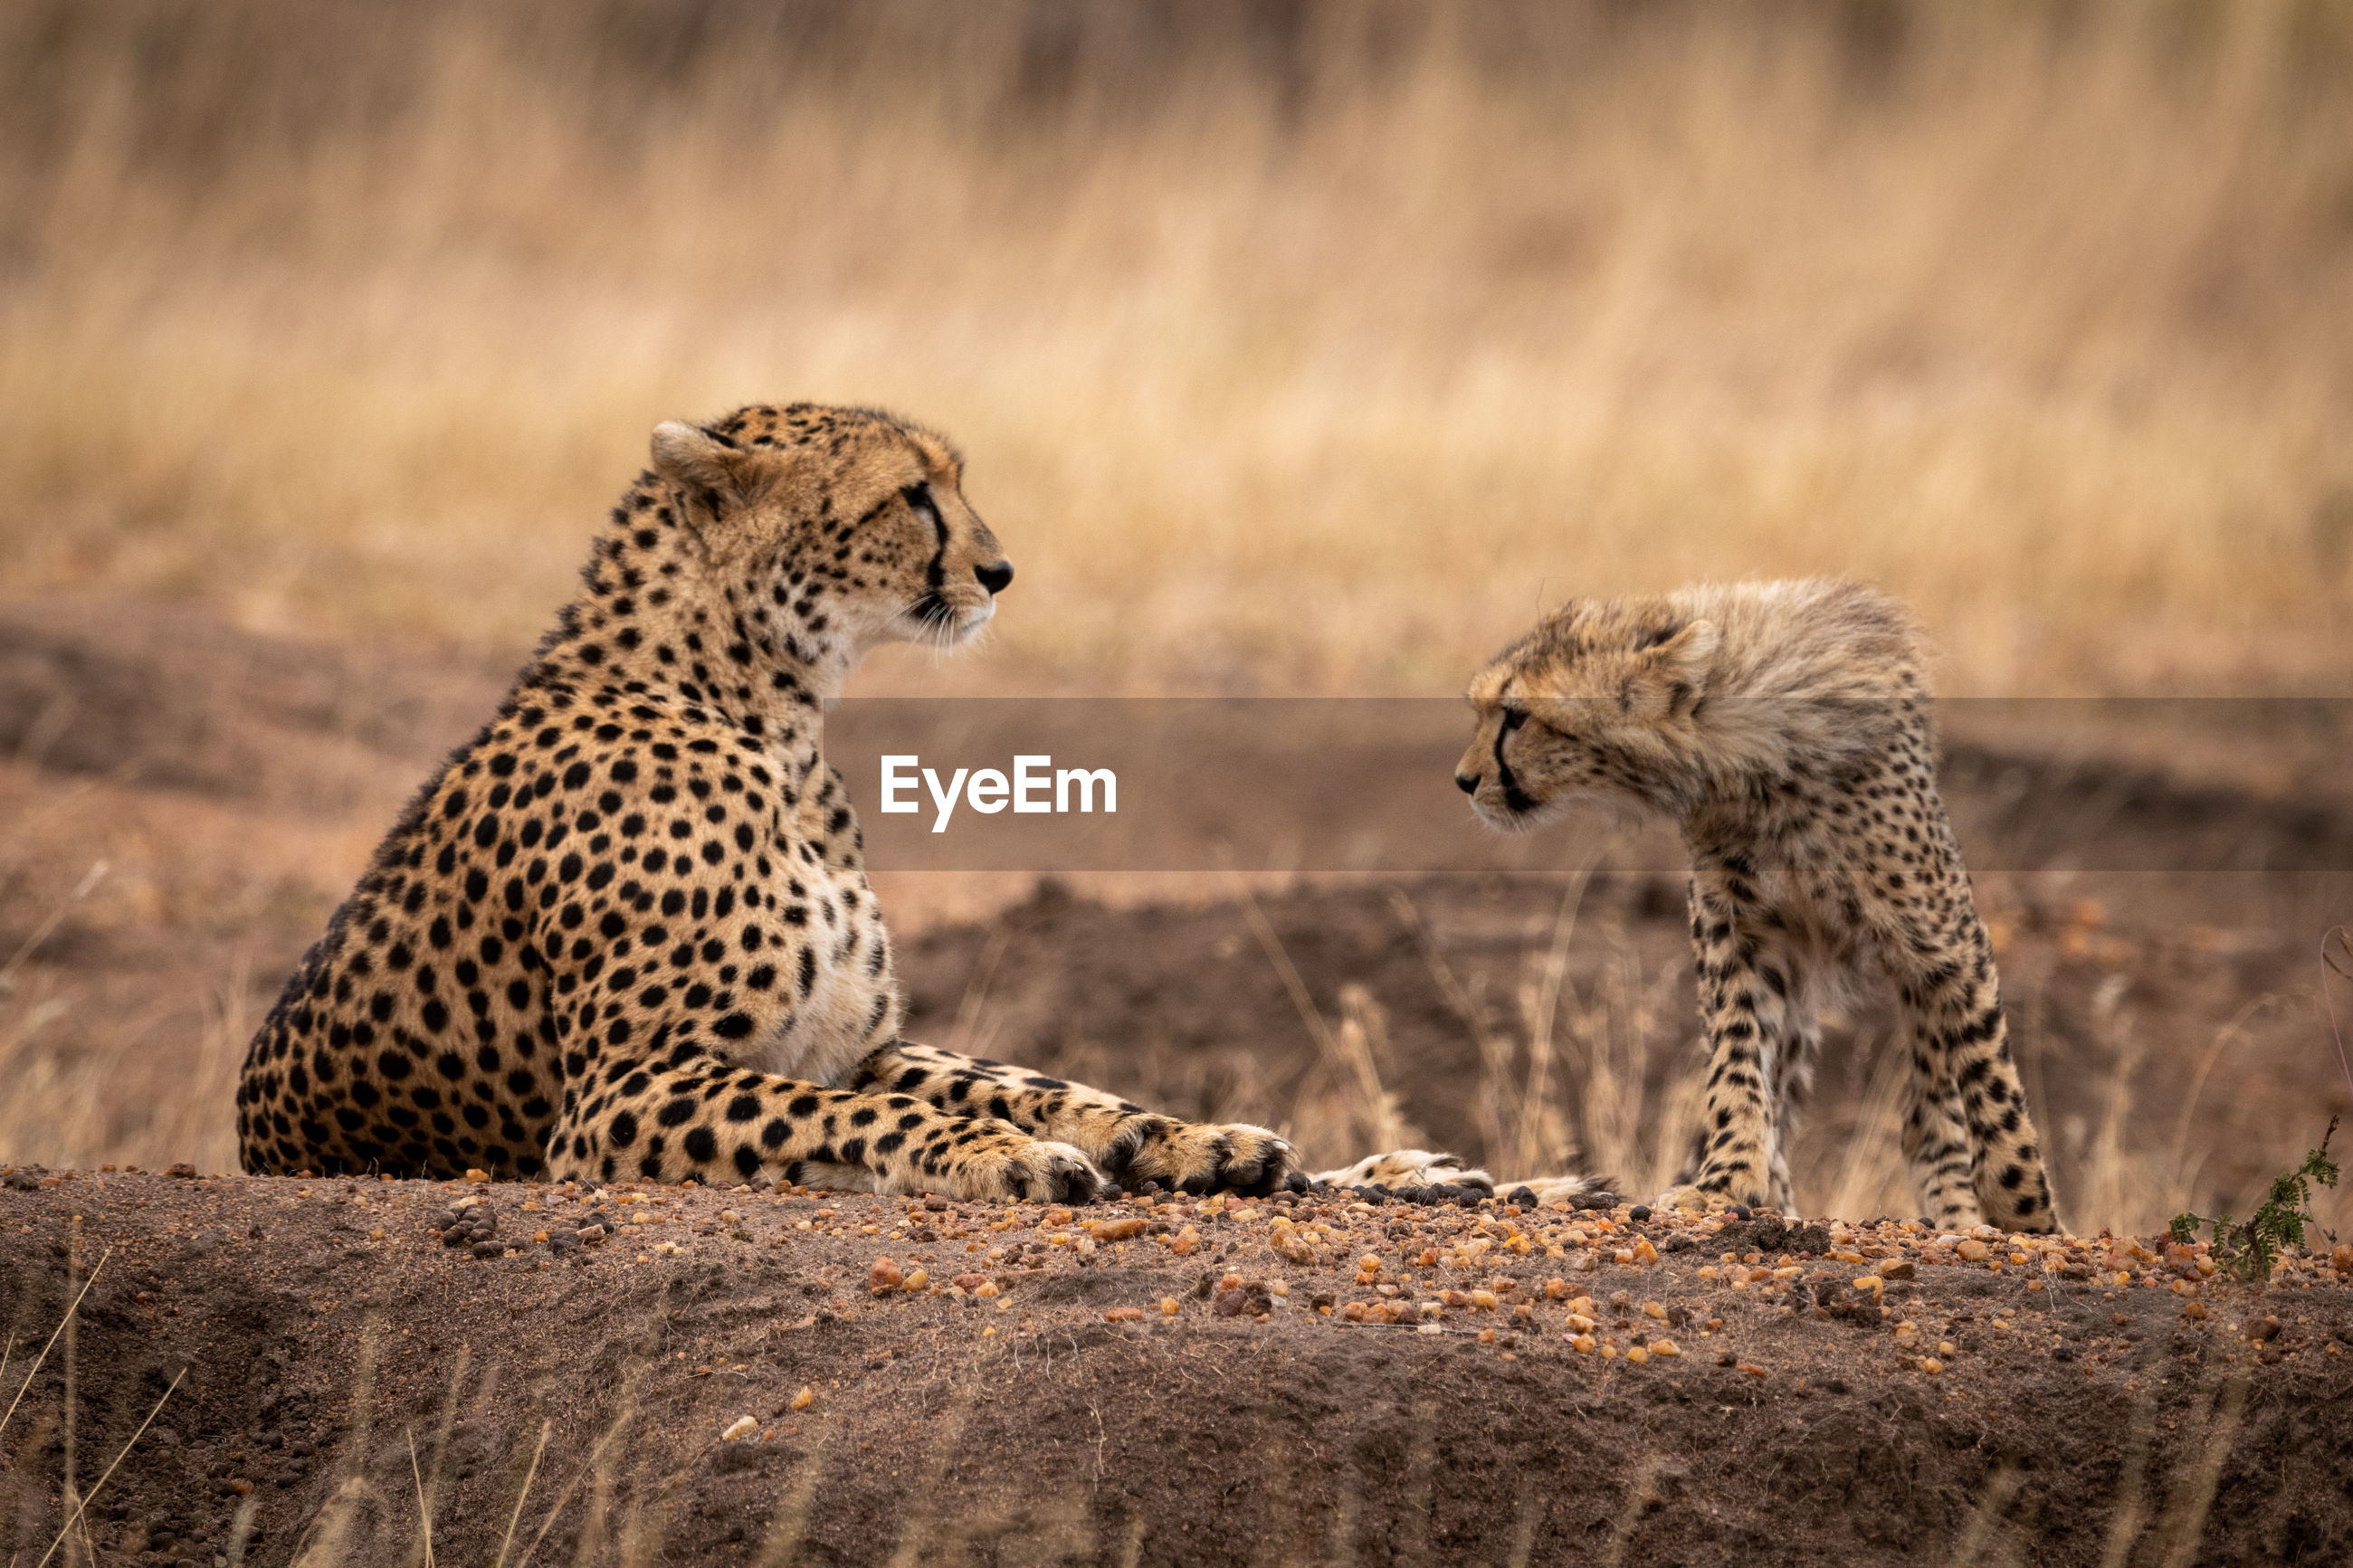 Cheetahs on field in forest